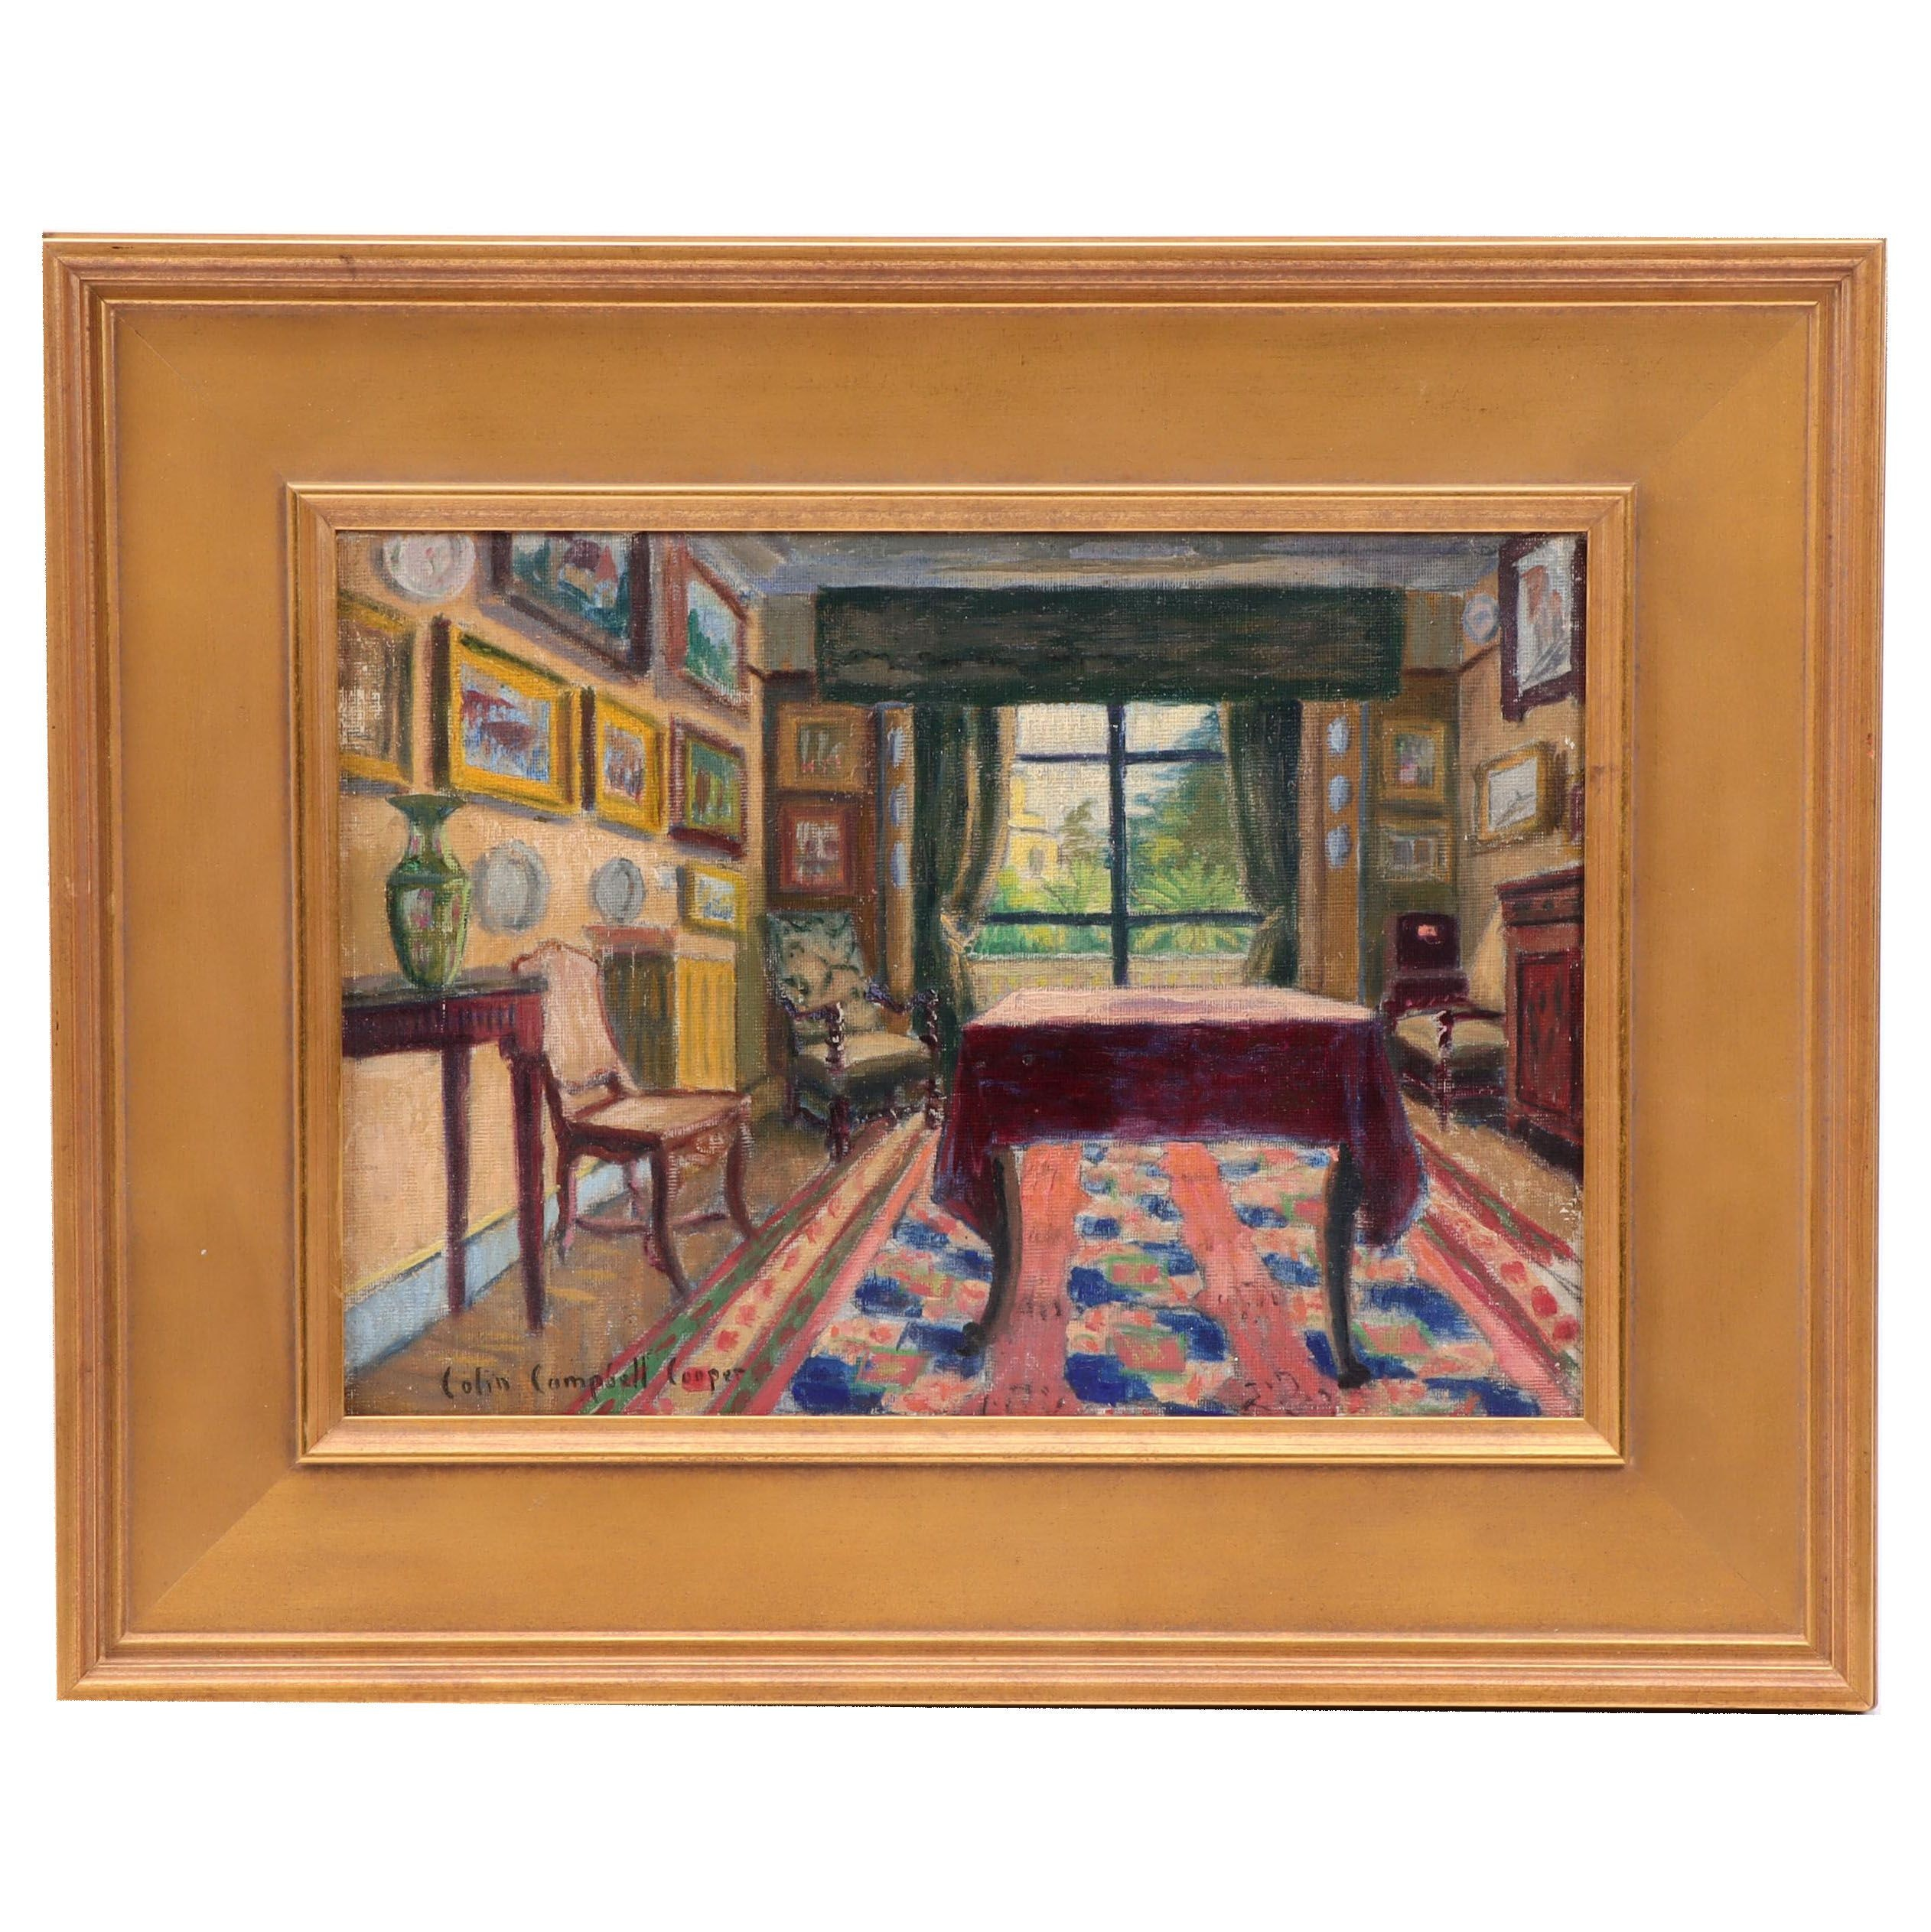 Colin Cambpell Cooper Oil Painting of Interior Scene